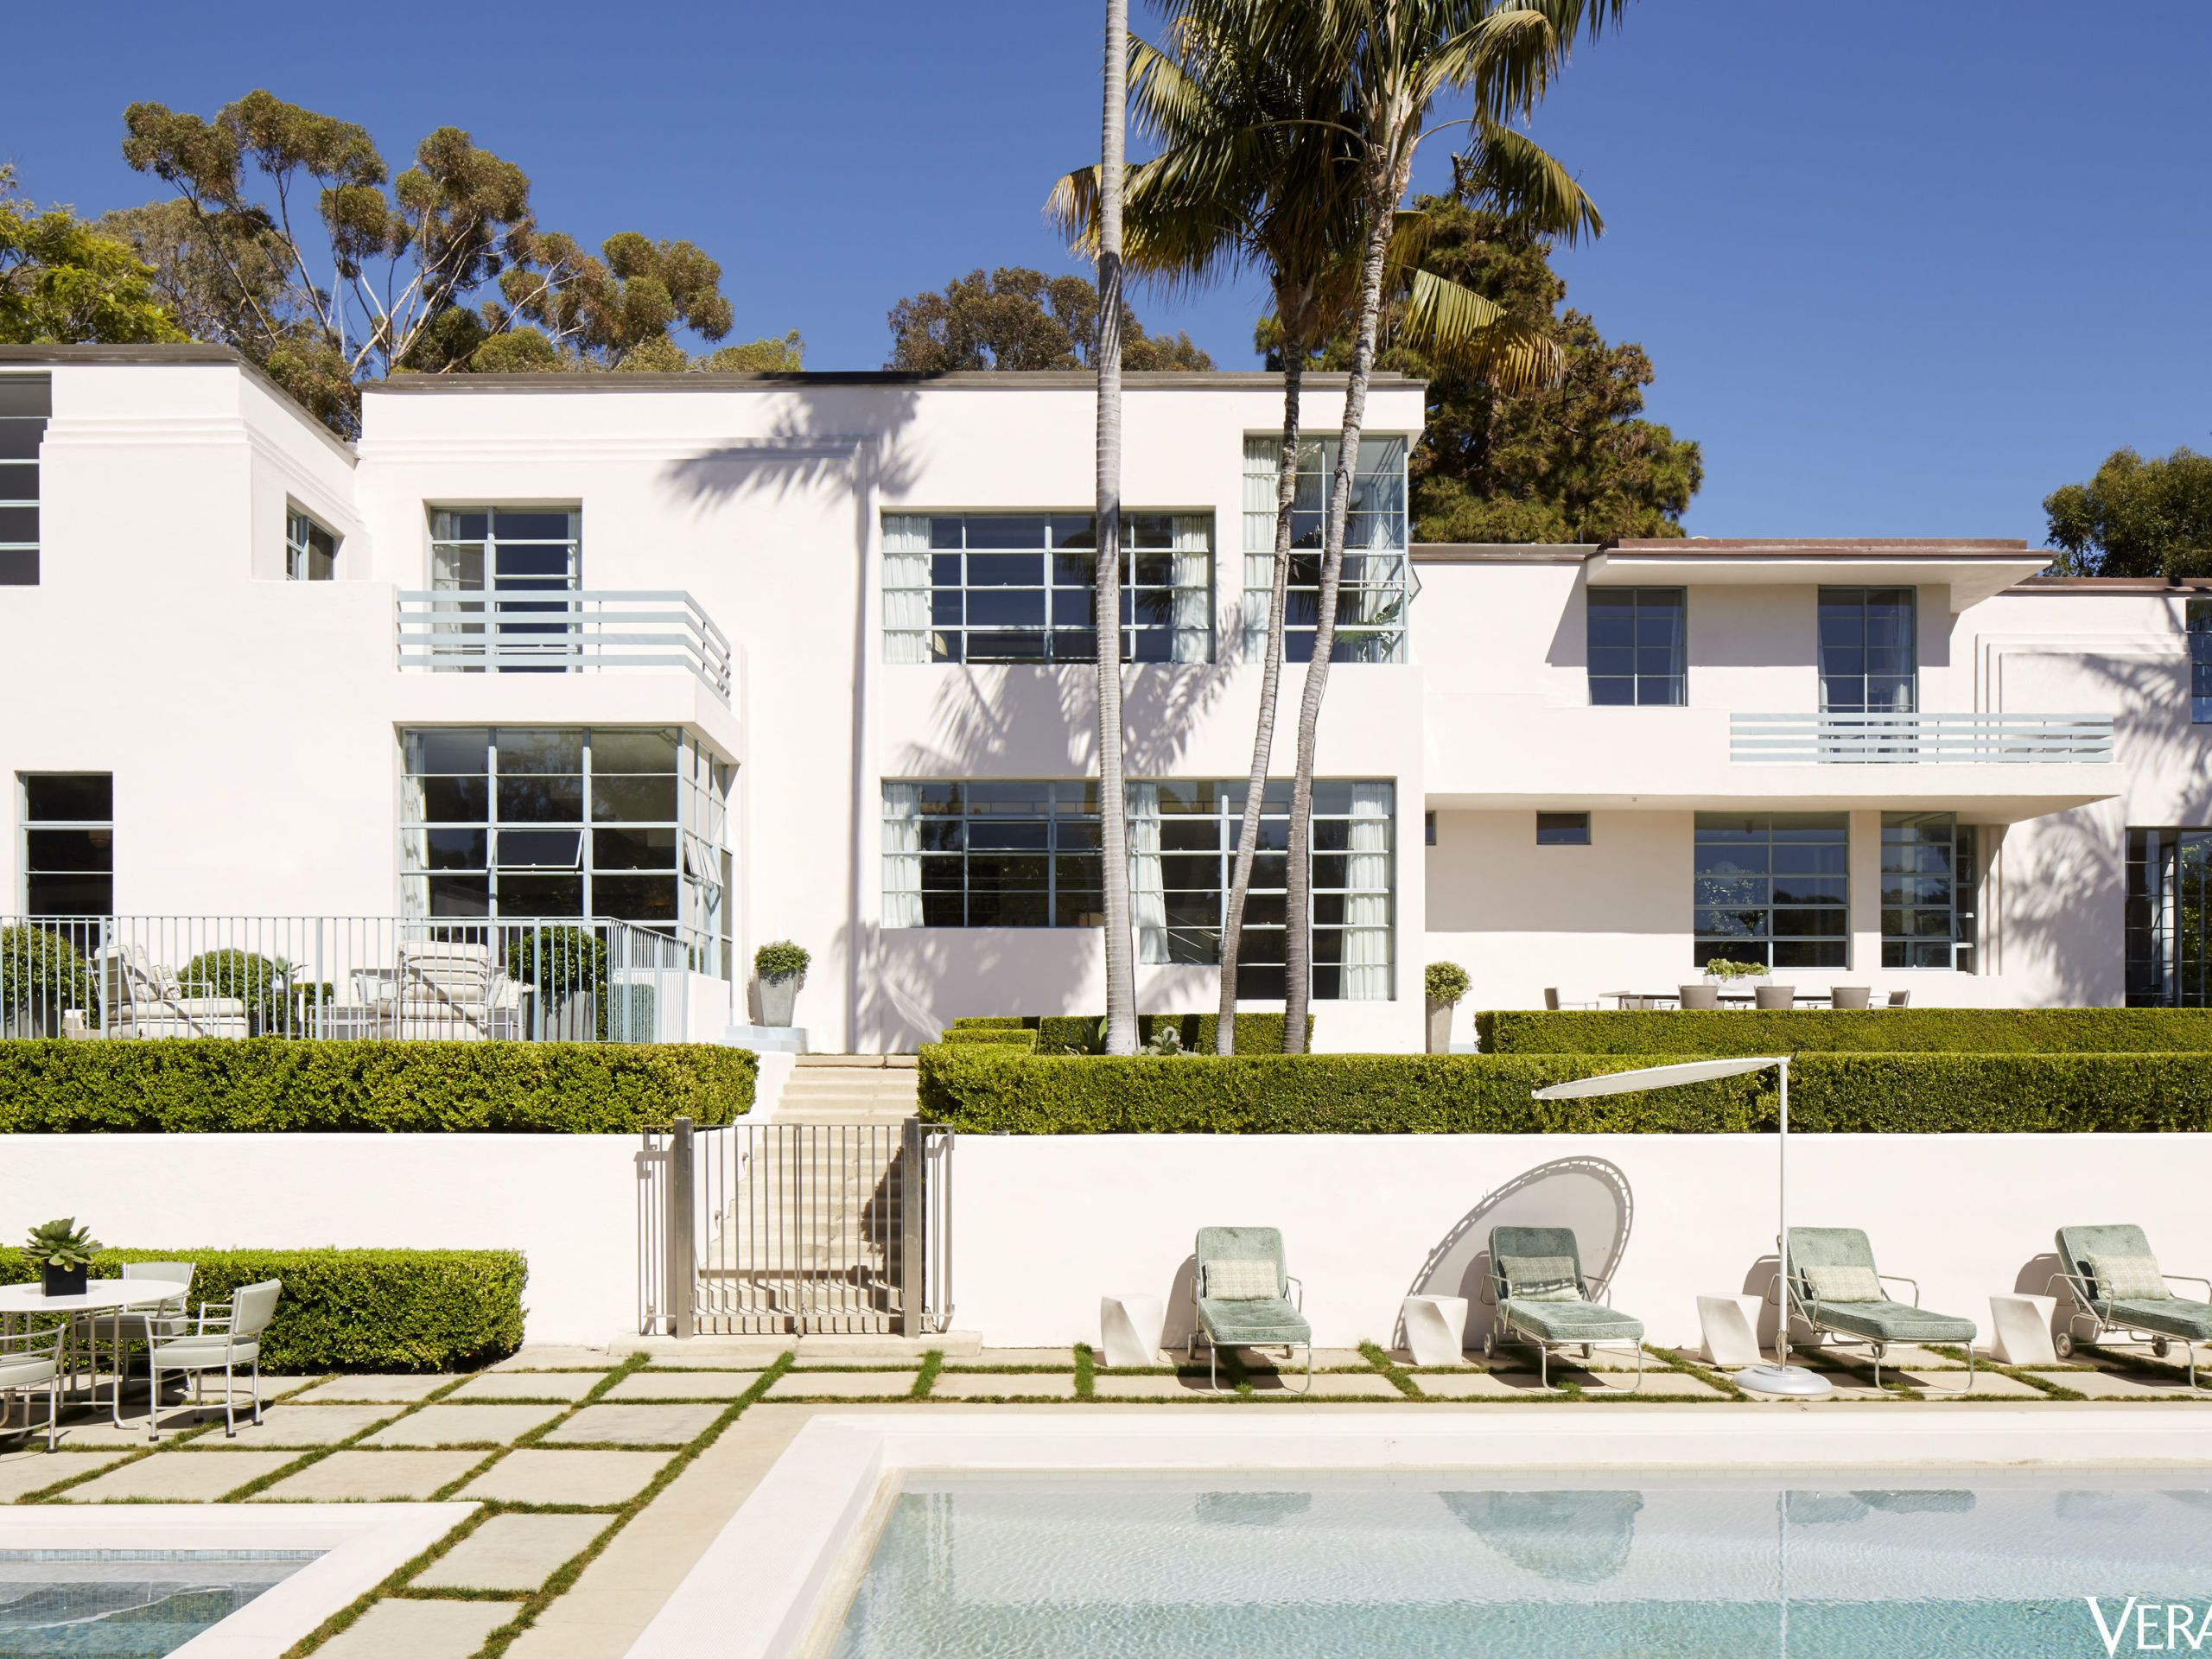 HOUSE TOUR: An Art Deco Home That Honors Its Old Hollywood Legacy & Cedric Gibbons Dolores del Rio House Tour - Hollywood Homes